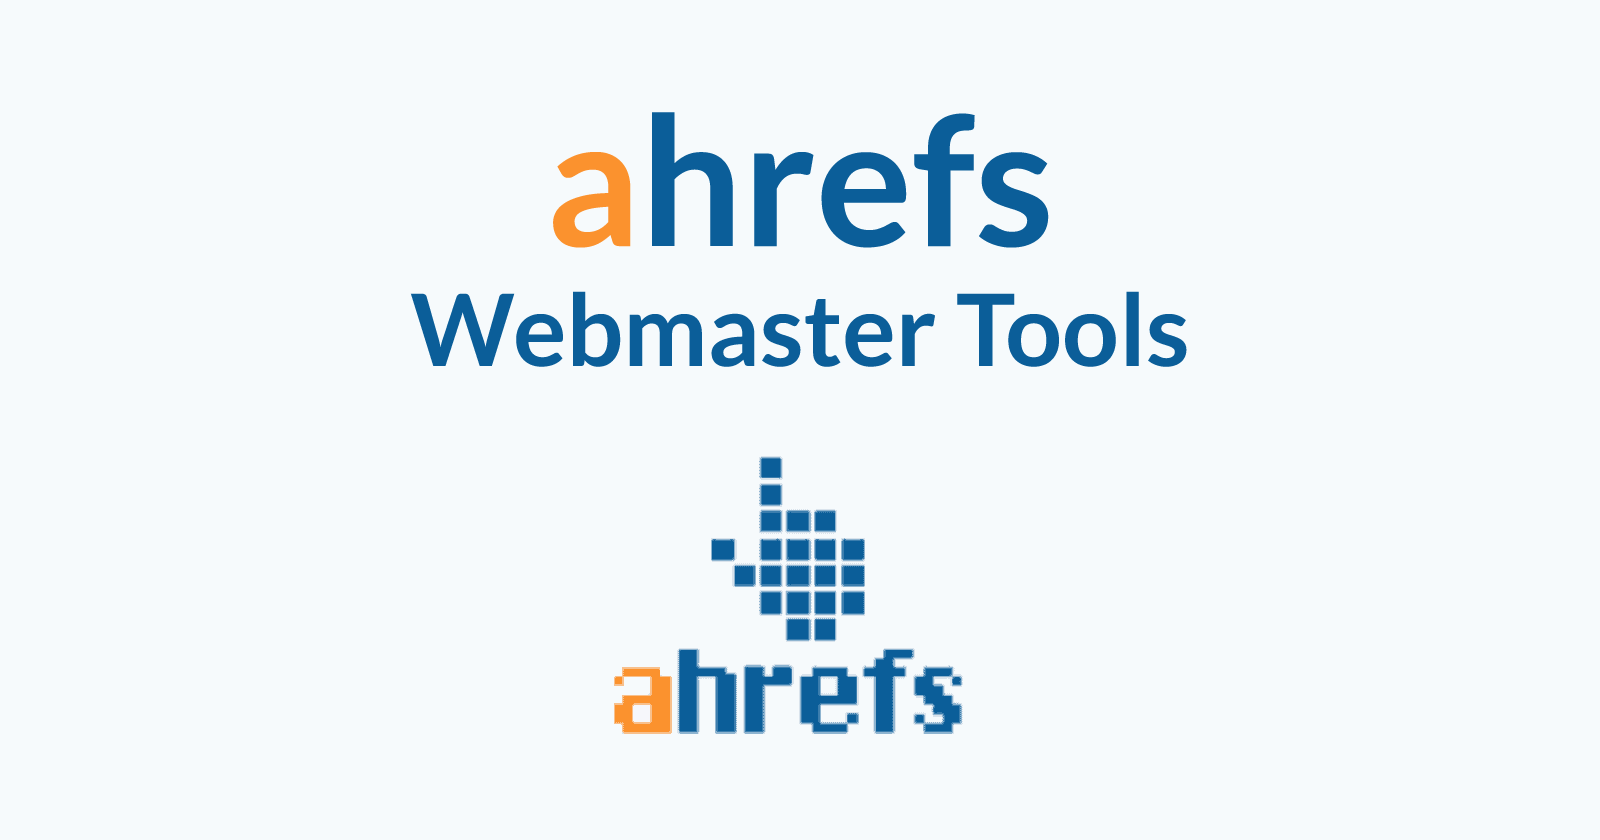 Ahrefs Webmaster Tools is Powerful... and it's Free - Search Engine Journal